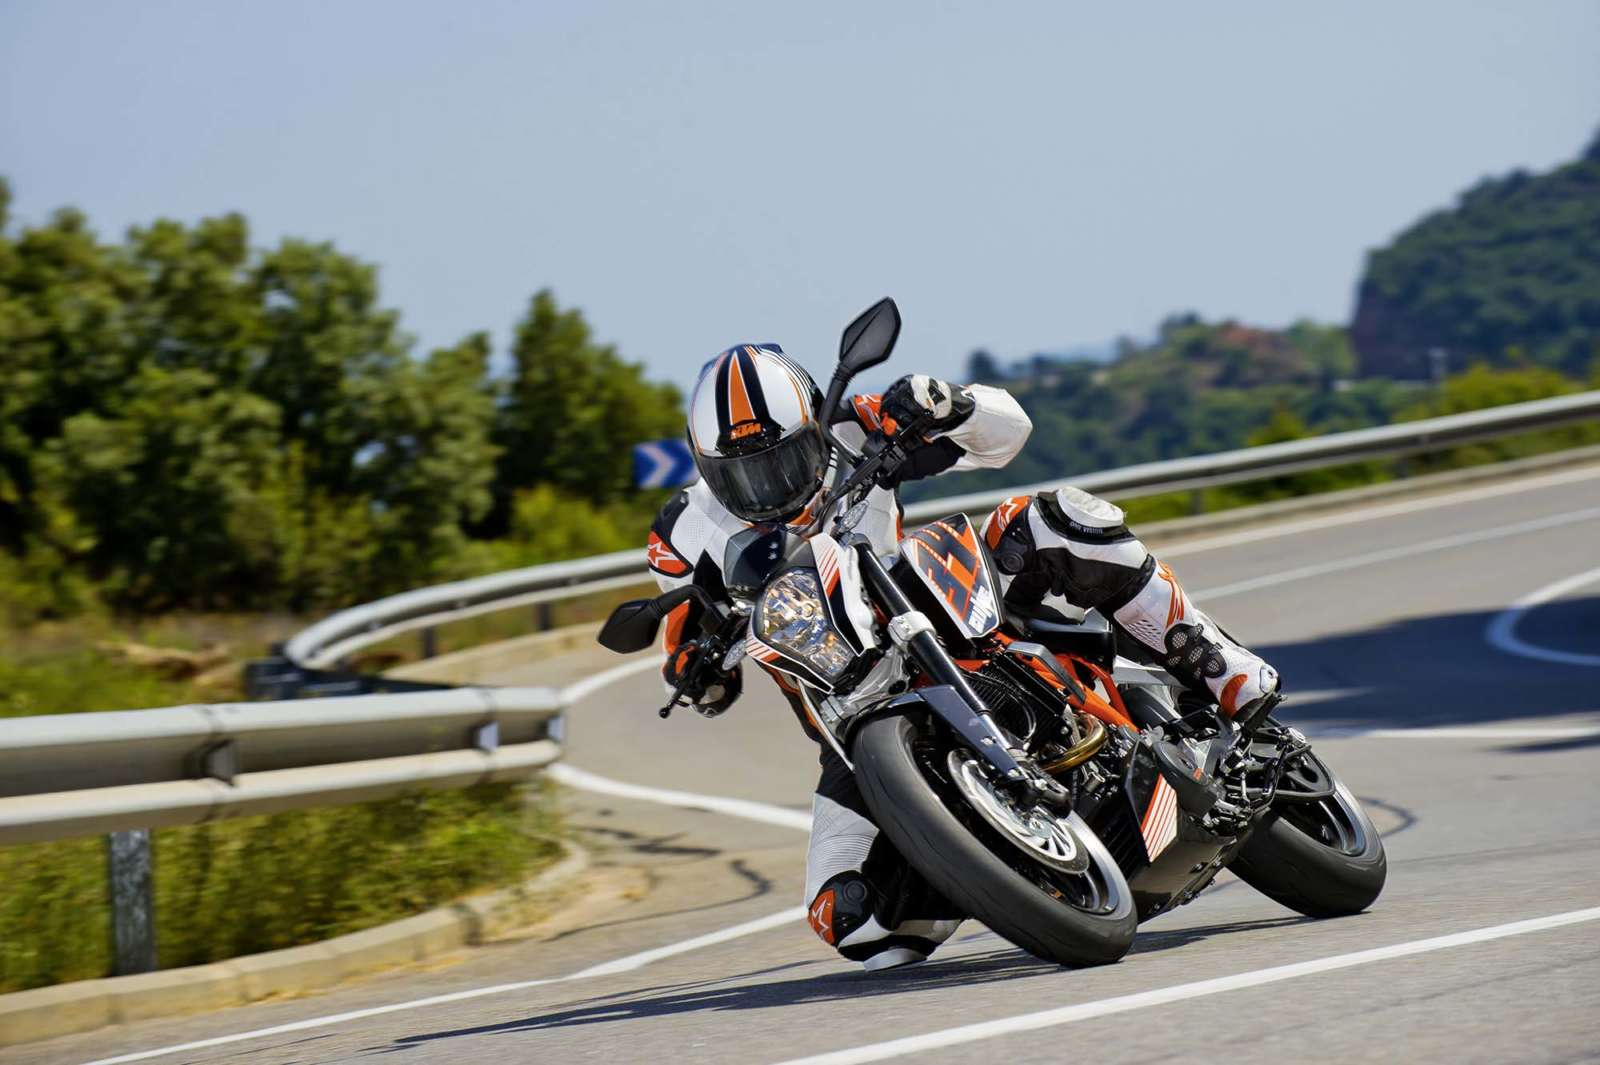 KTM-390-Duke-Kawasaki-Ninja-300-India-Launch motoroids-pramotion-728 KTM-Duke-390